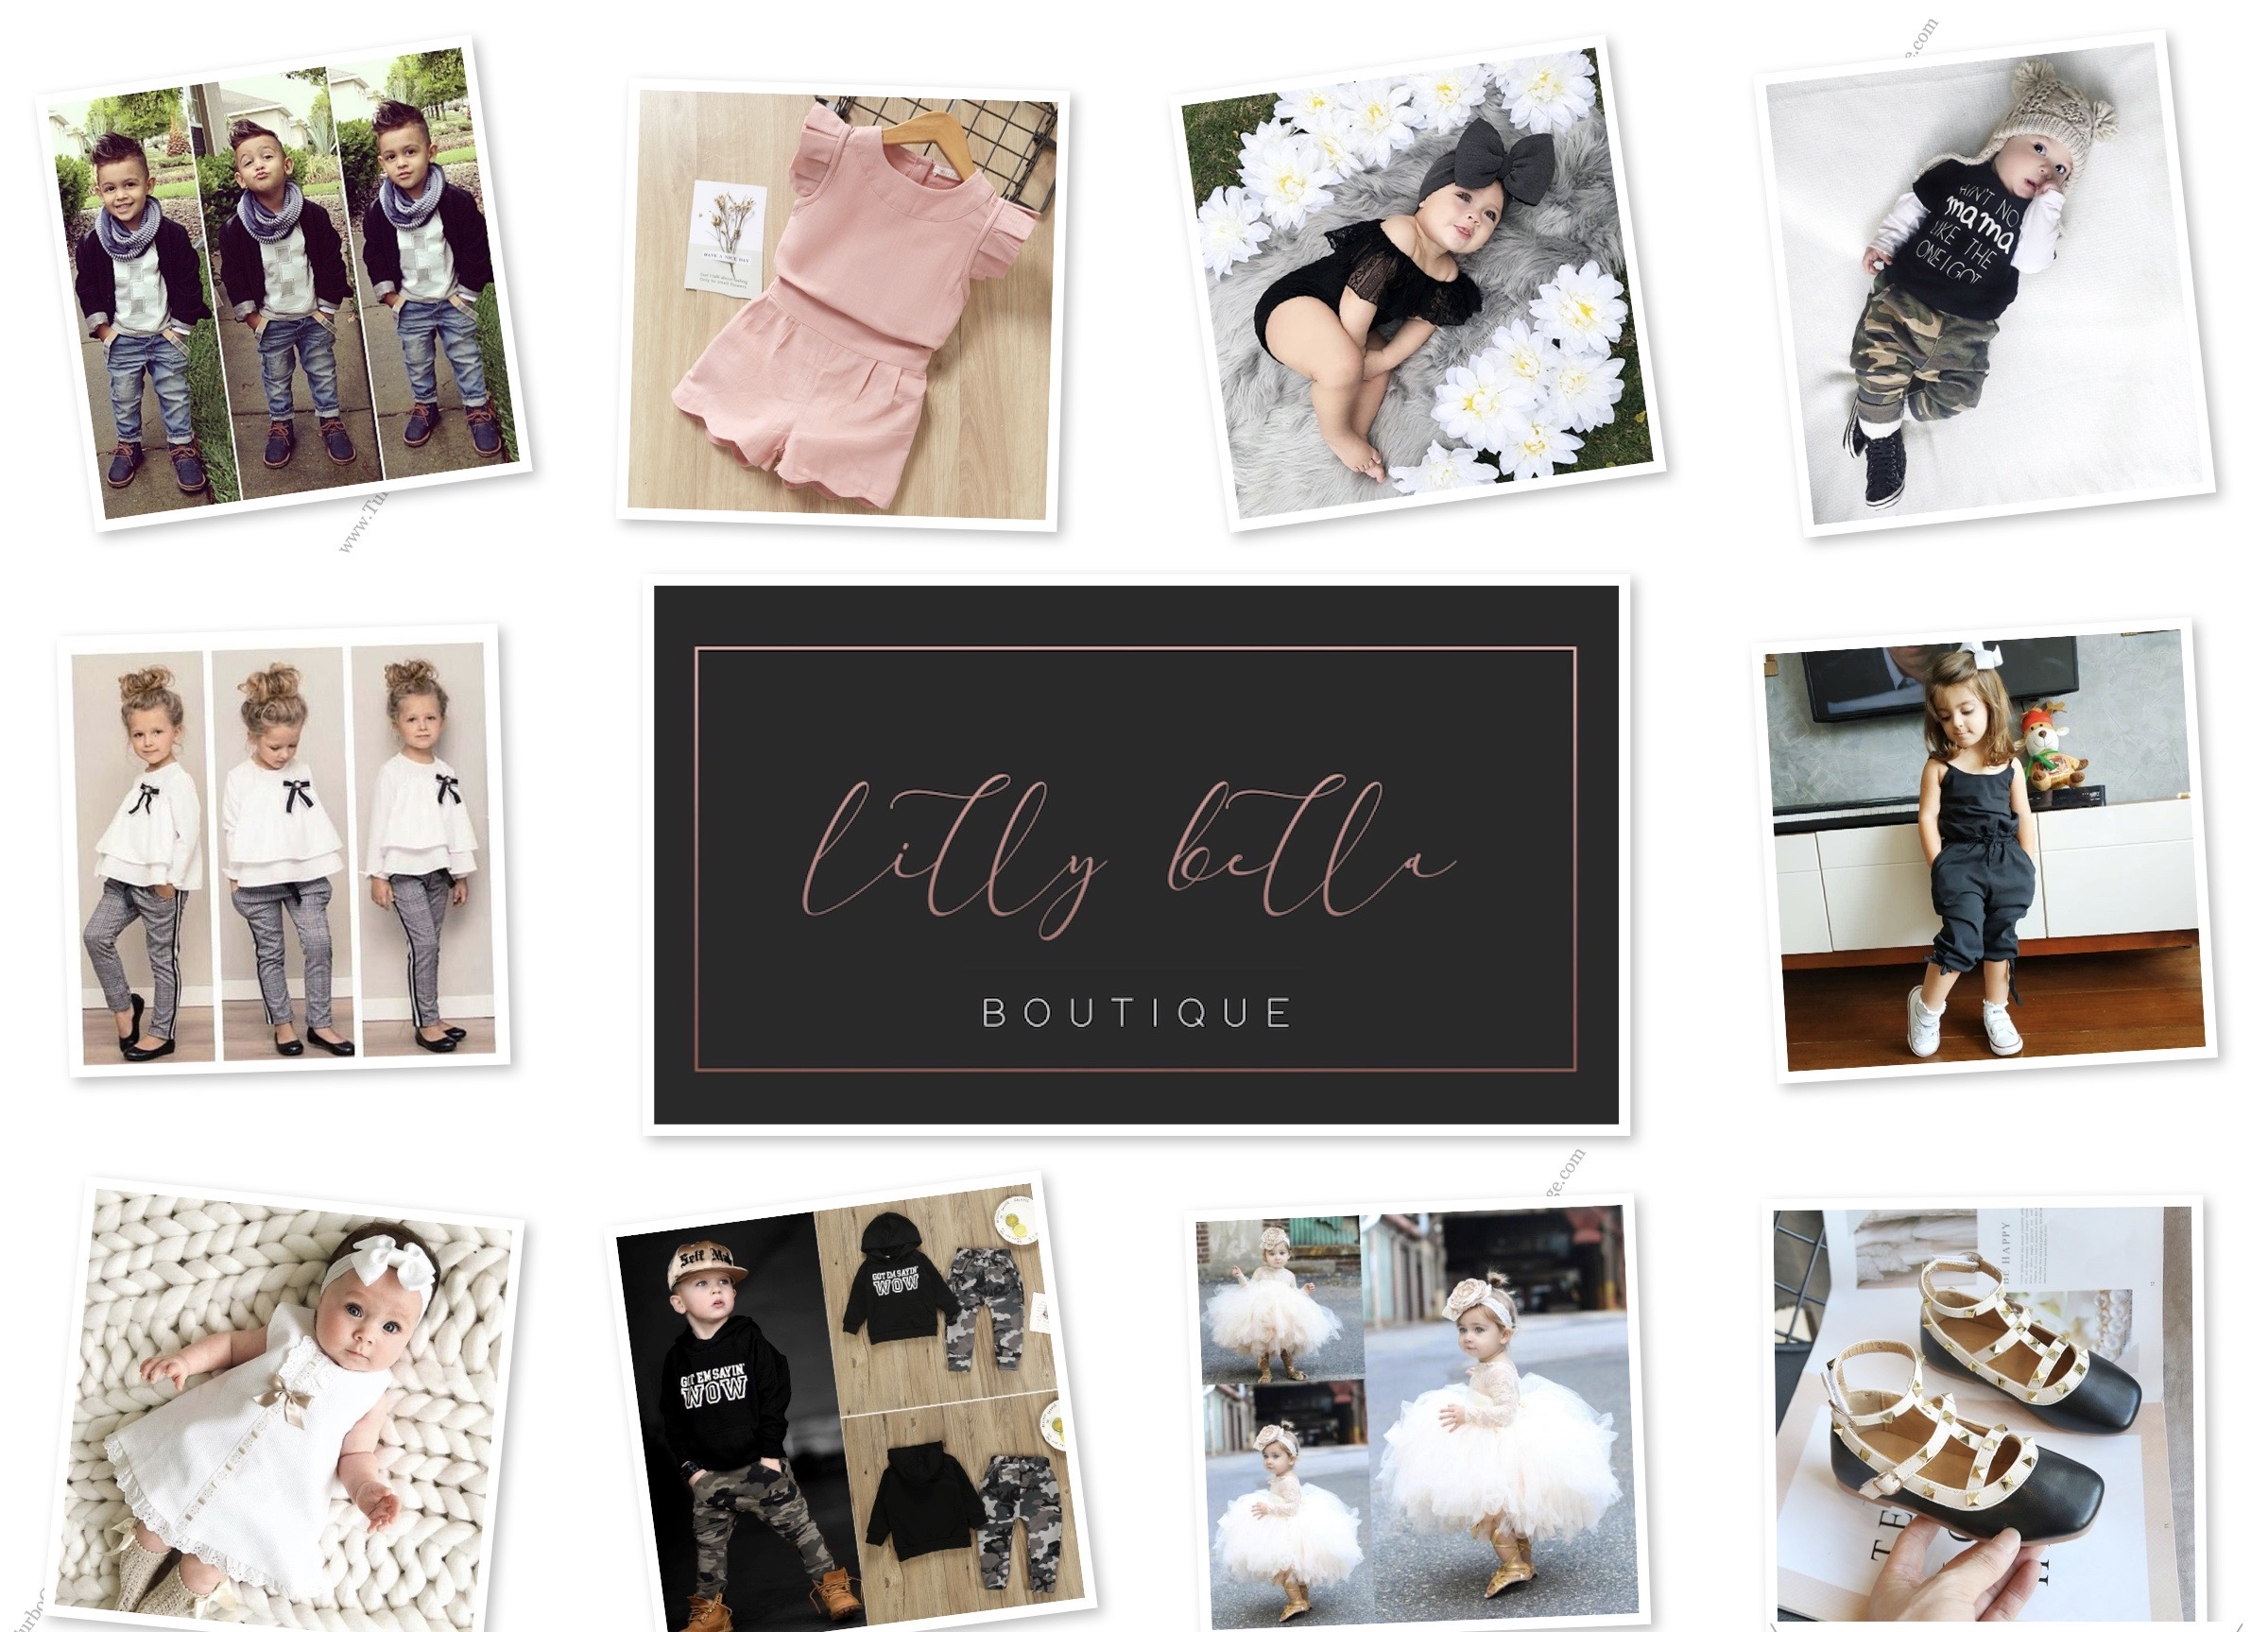 Lilly Bella Boutique